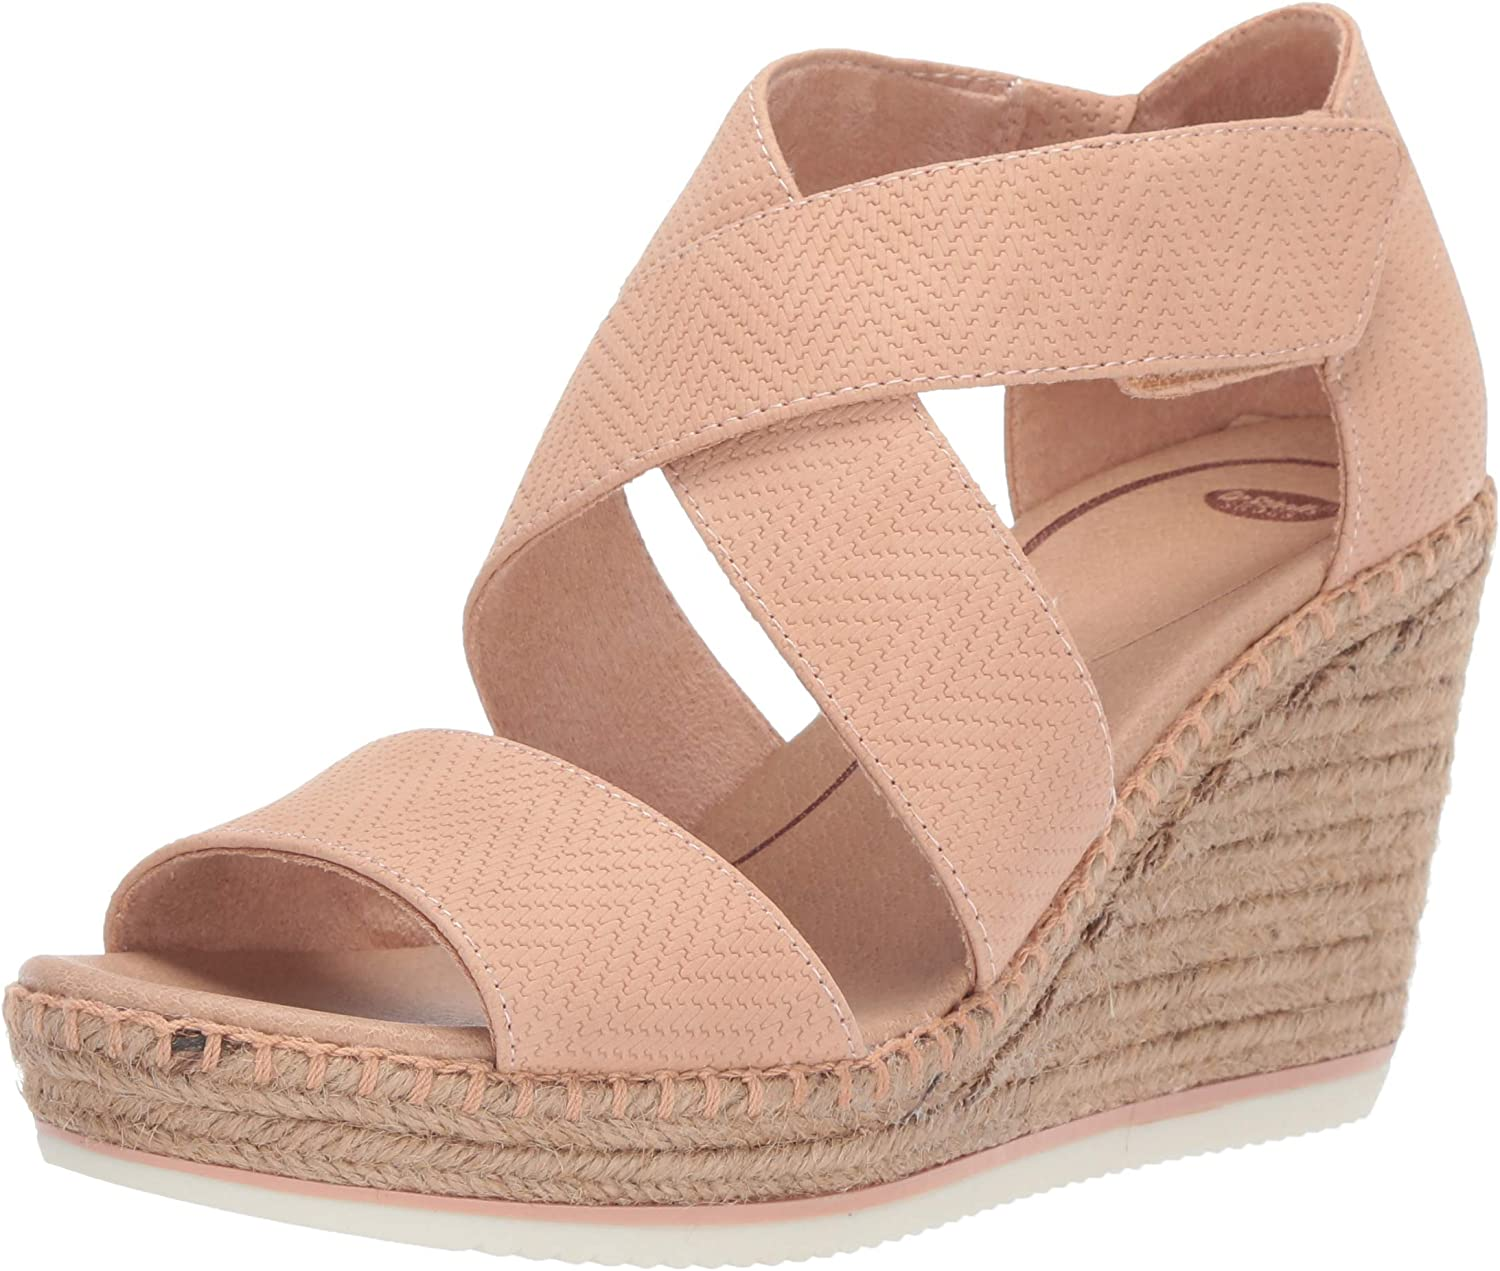 Dr. Scholl's shoes Womens Vacay Espadrille Wedge Sandal